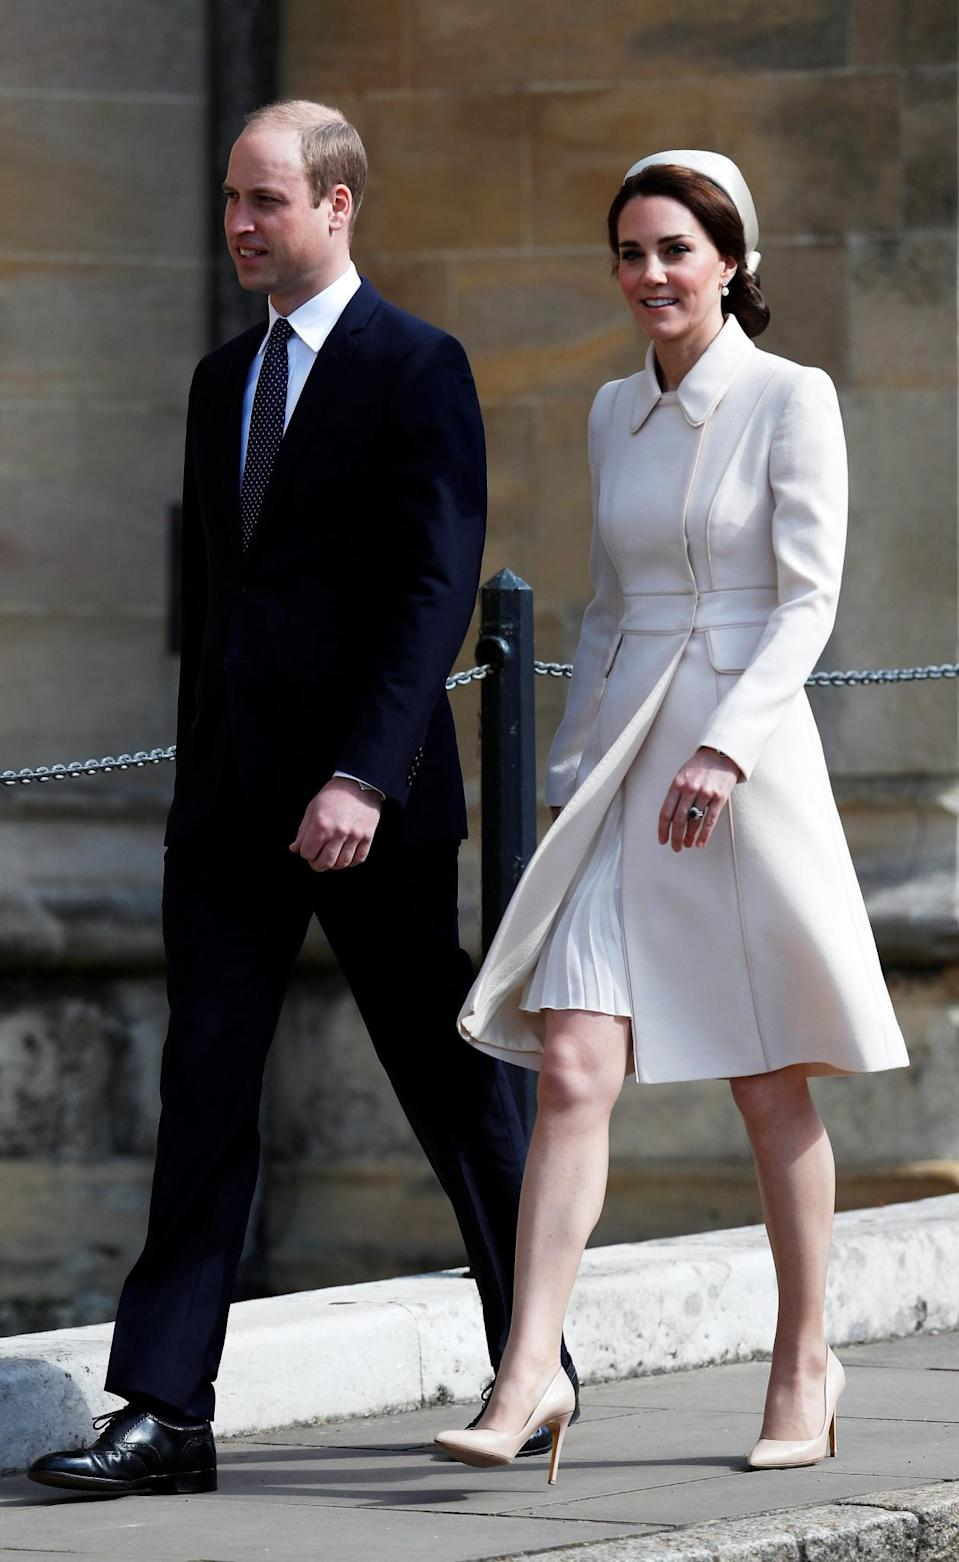 <p>Kate recycled yet another outfit for the Easter Sunday service in Windsor. Her bespoke cream coat by Catherine Walker was first seen on the Canadian royal tour. The Duchess chose matching accessories in the form of Rupert Sanderson pumps and a lattice clutch by Etui Bags. A satin pillbox hat topped off the springtime look.<br><i>[Photo: PA]</i> </p>